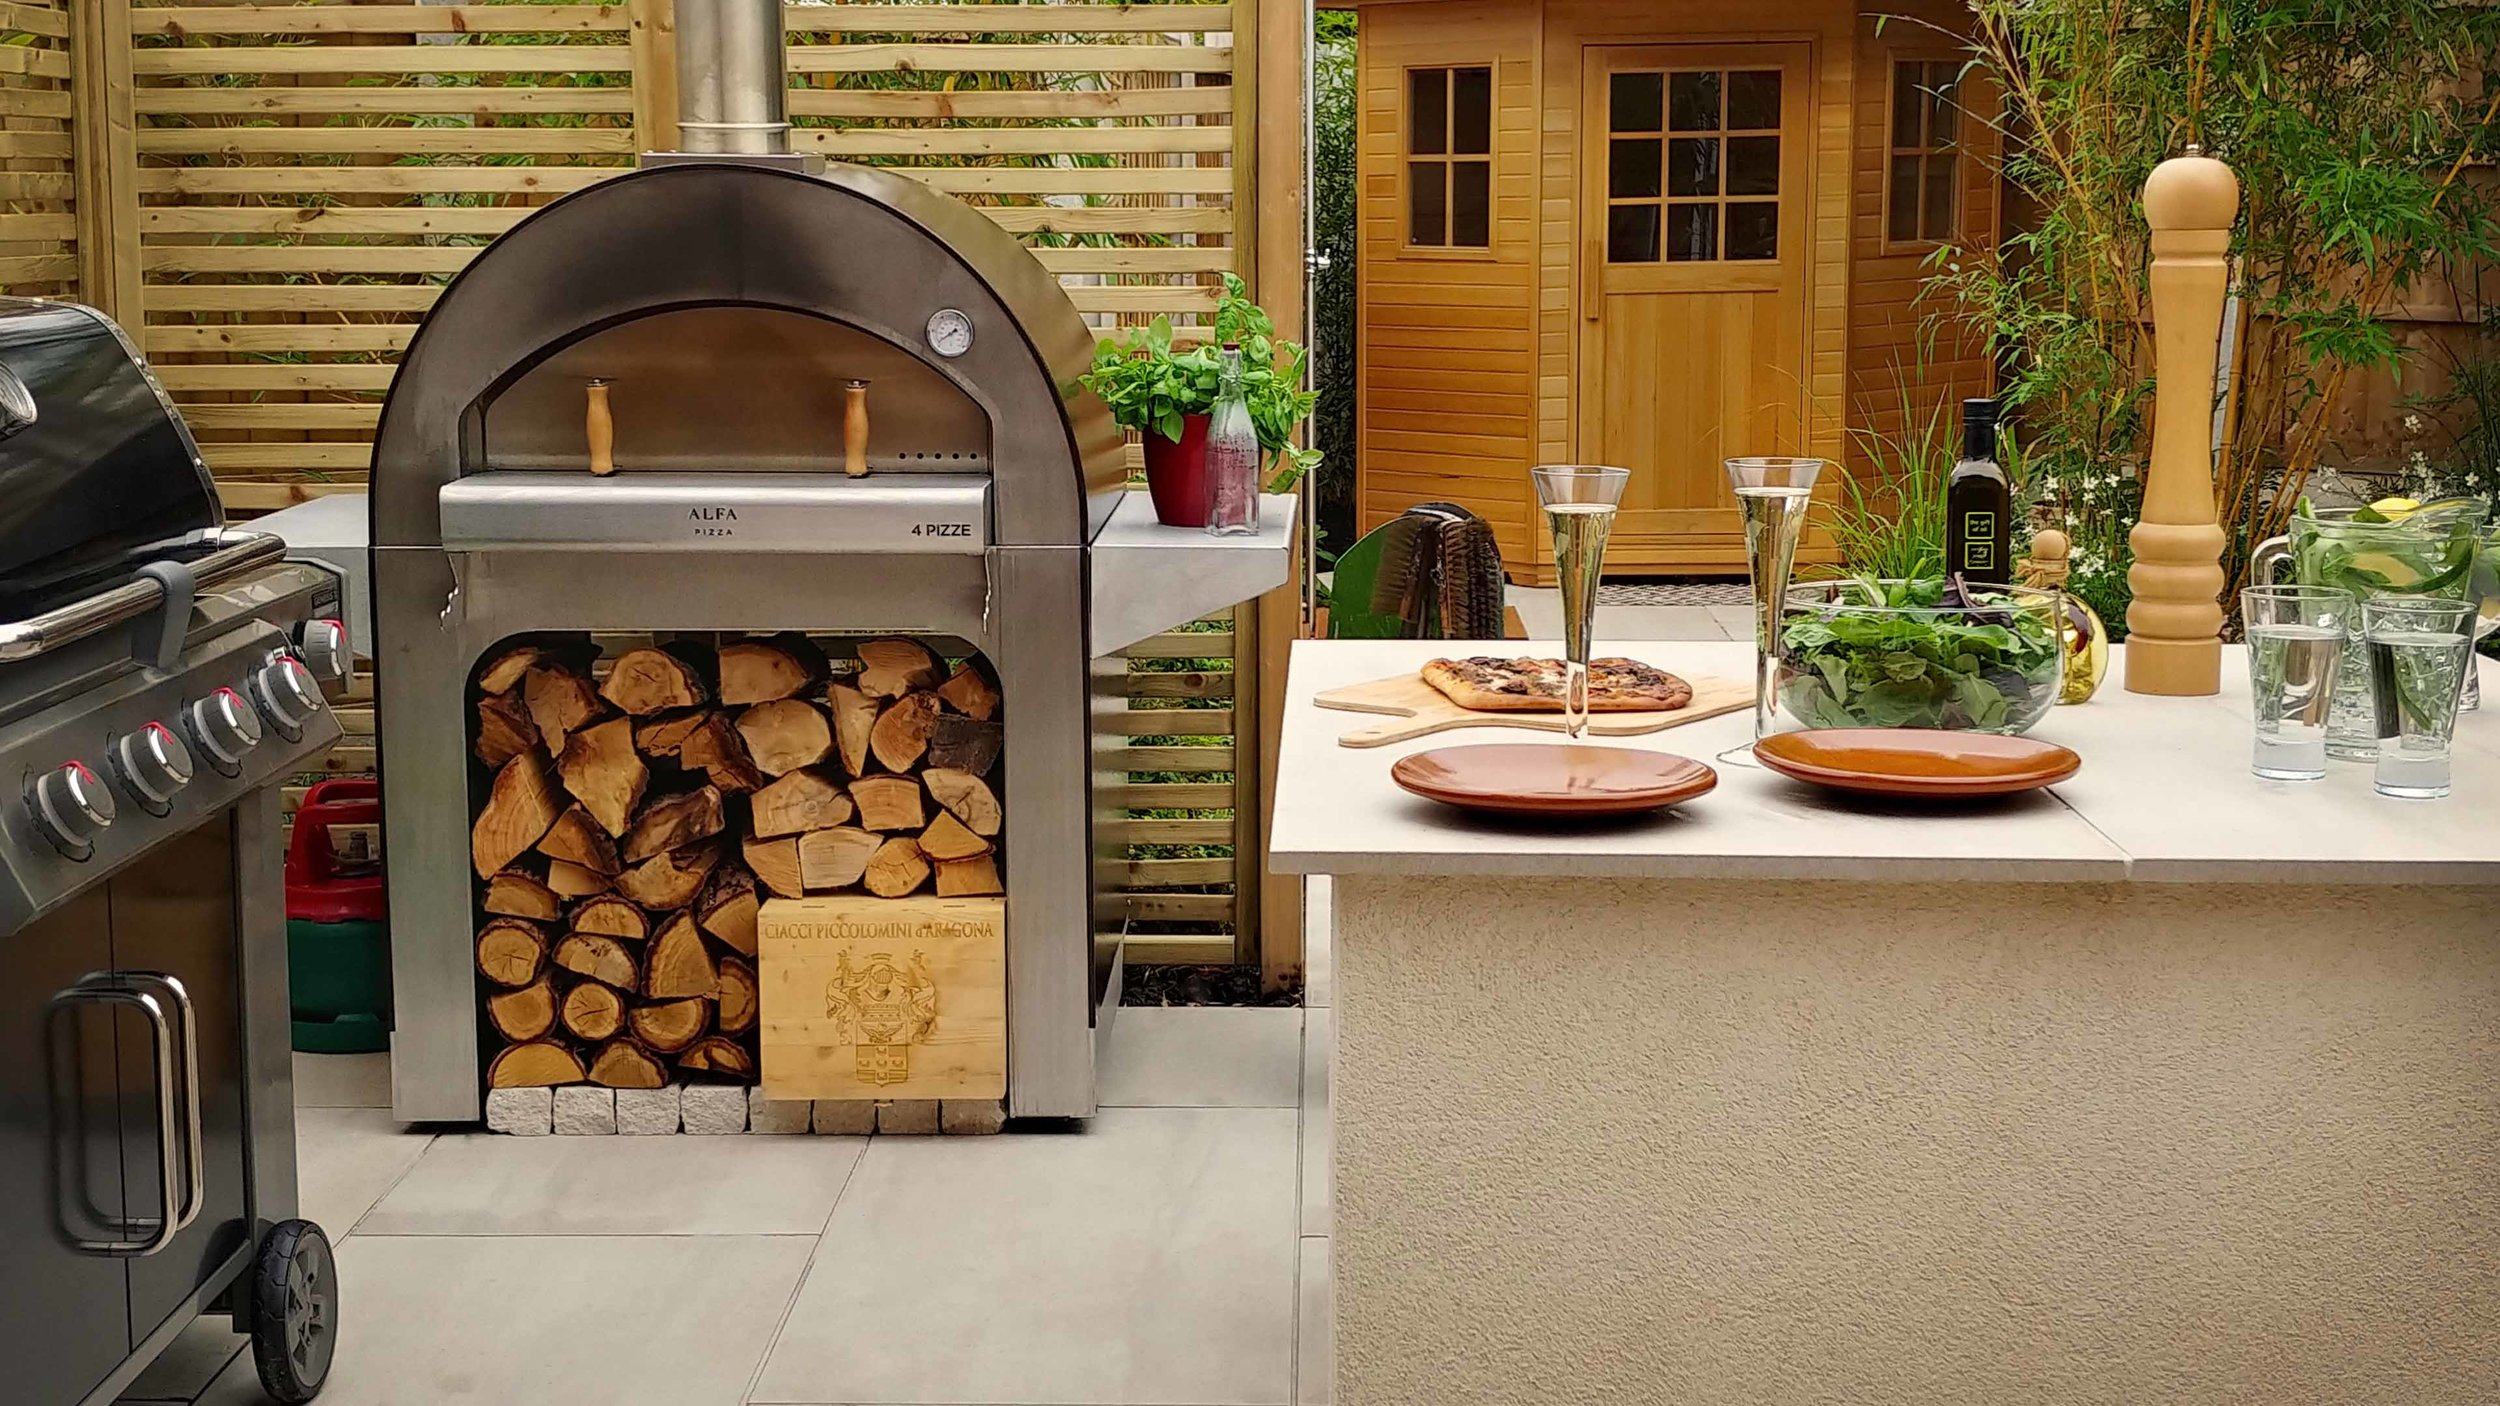 Garden Design Cheshire: Prairie Planting And Porcelain Patio: BBQ, Wood Fired Pizza Oven, Outdoor Kitchen And Sauna